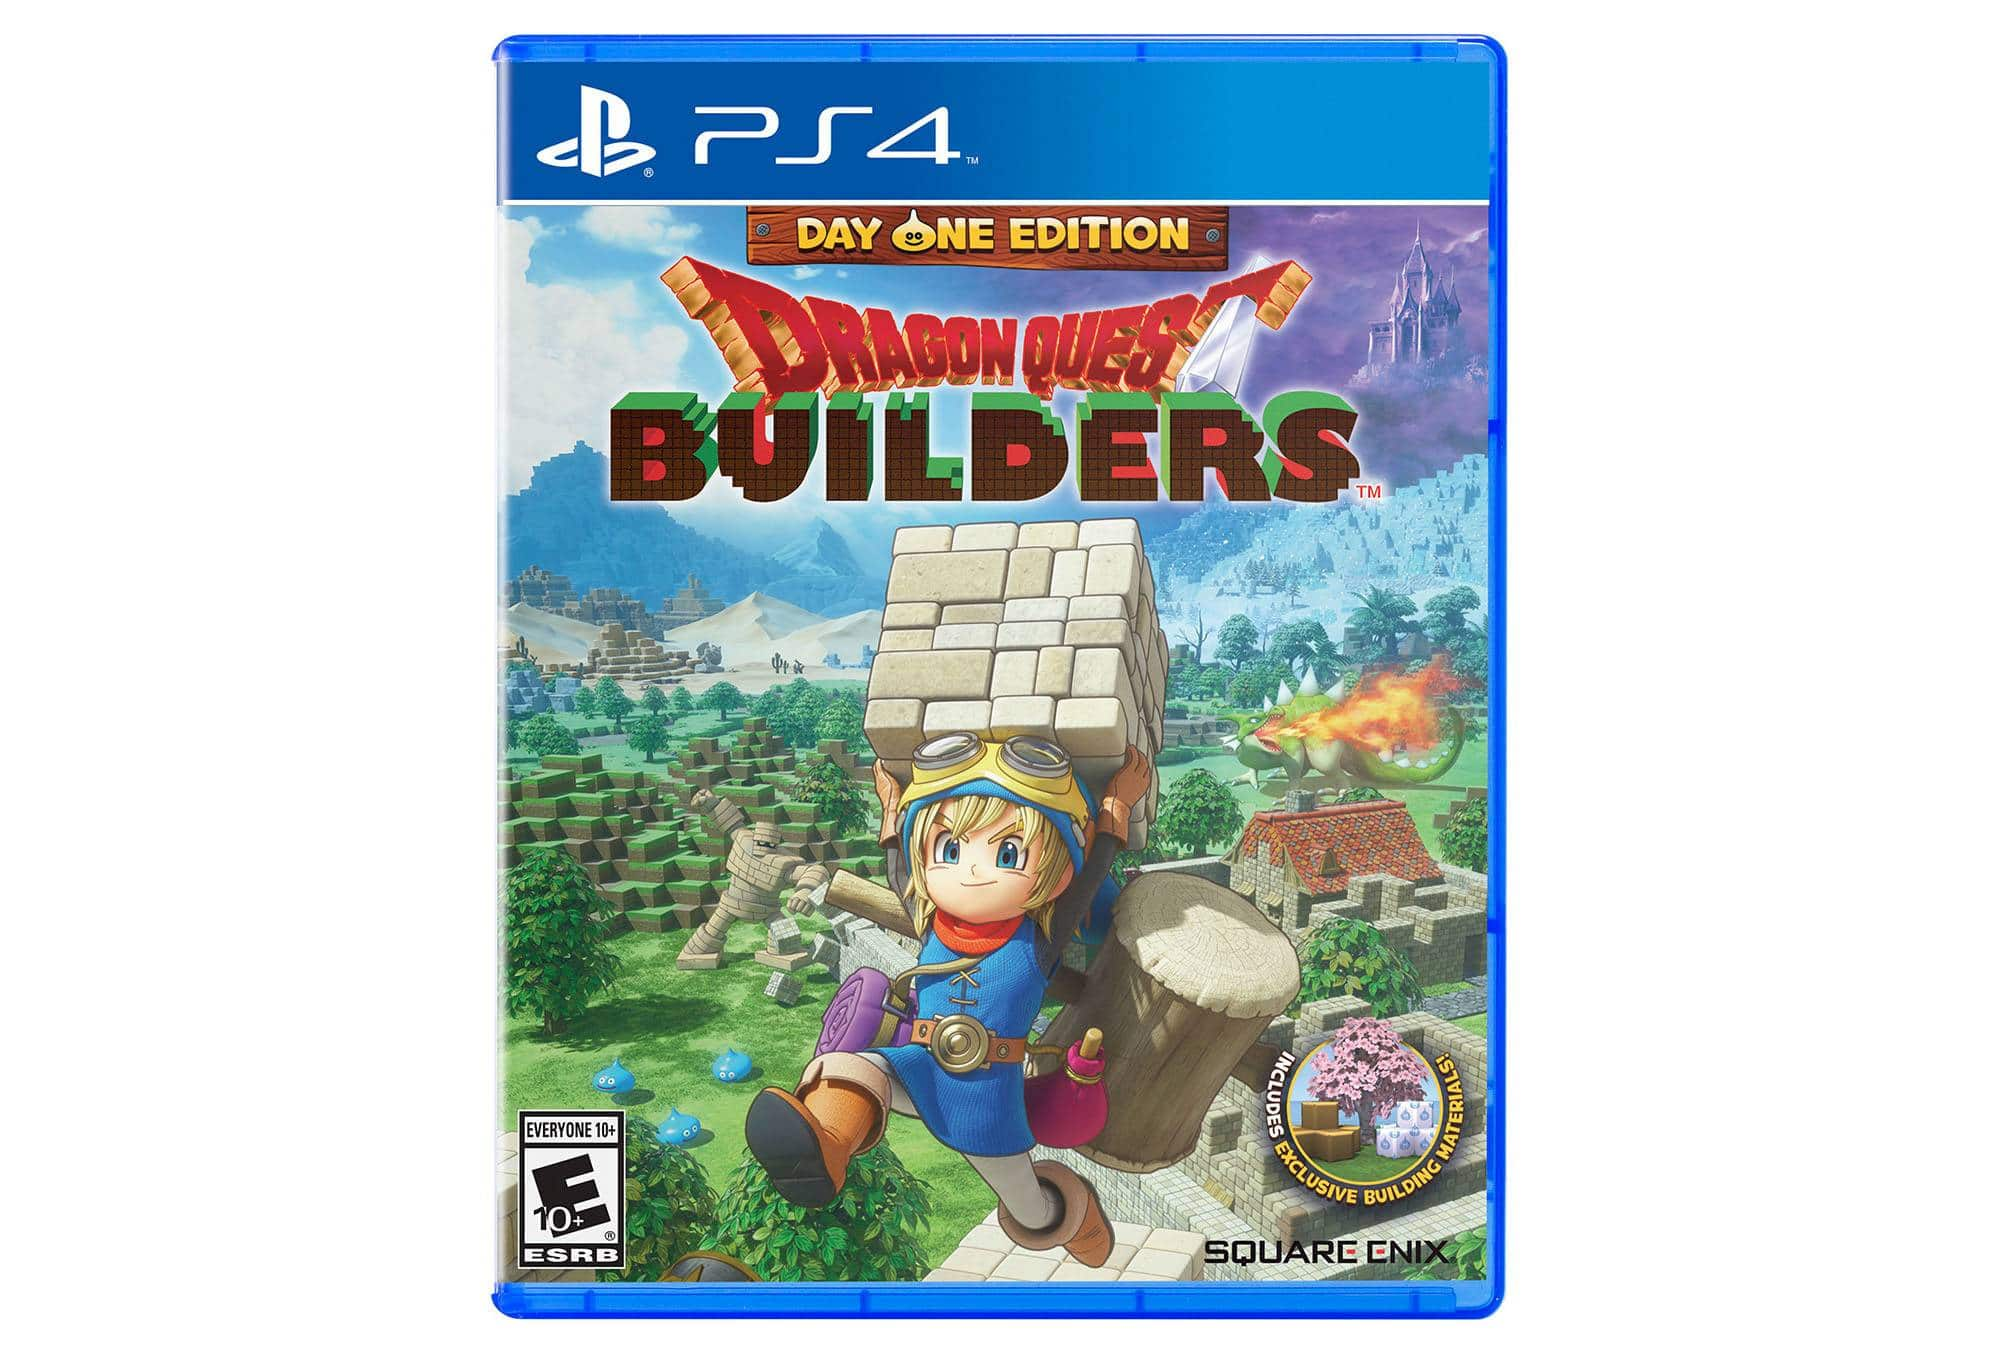 PS4 Dragon Quest Heroes 2 | Dragon Quest Builders $21.24 at Target